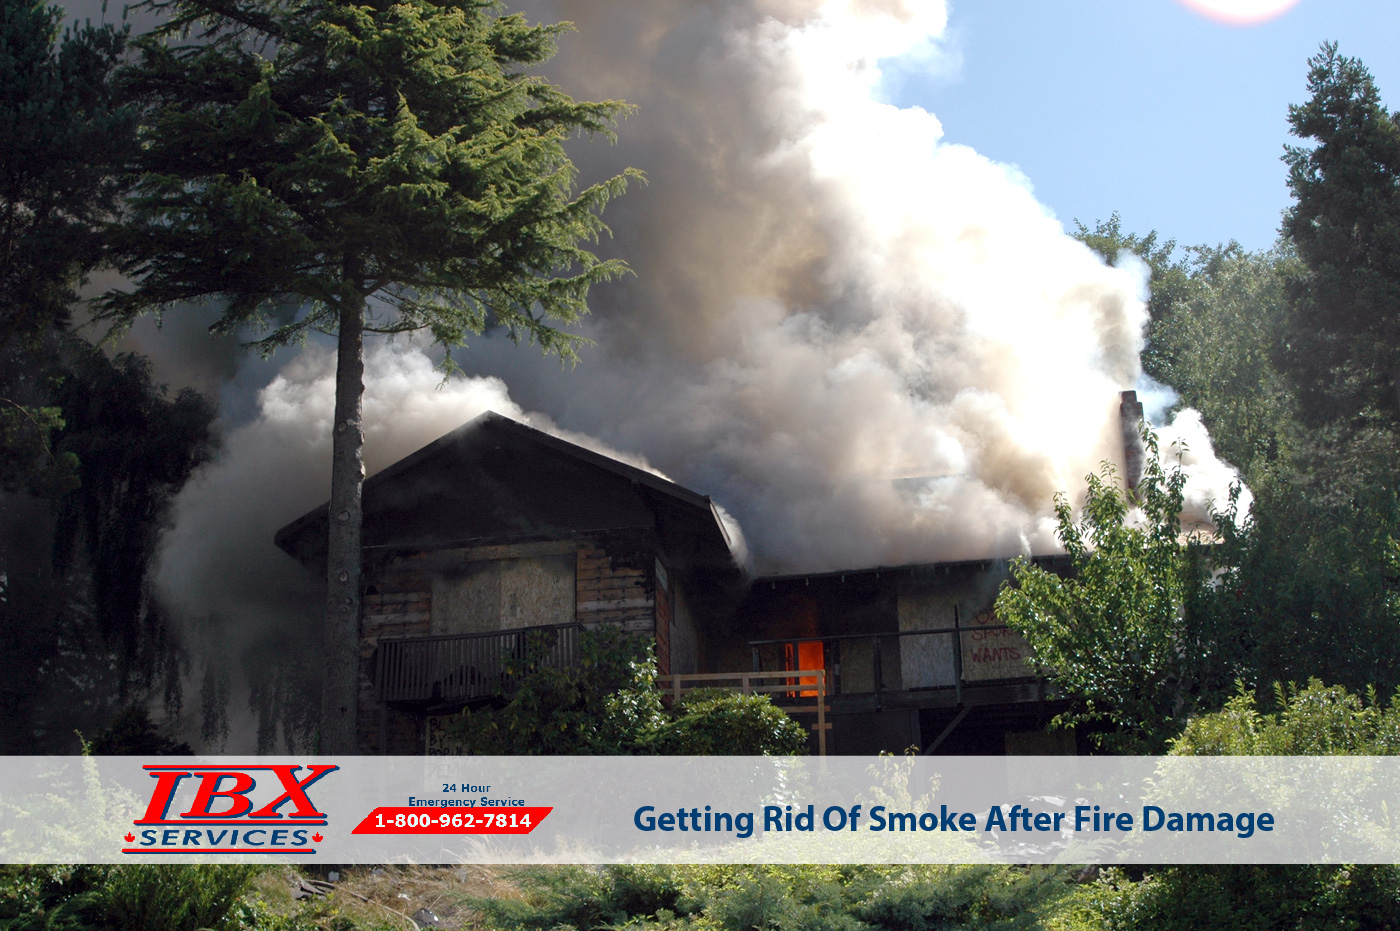 Getting Rid Of Smoke After Fire Damage